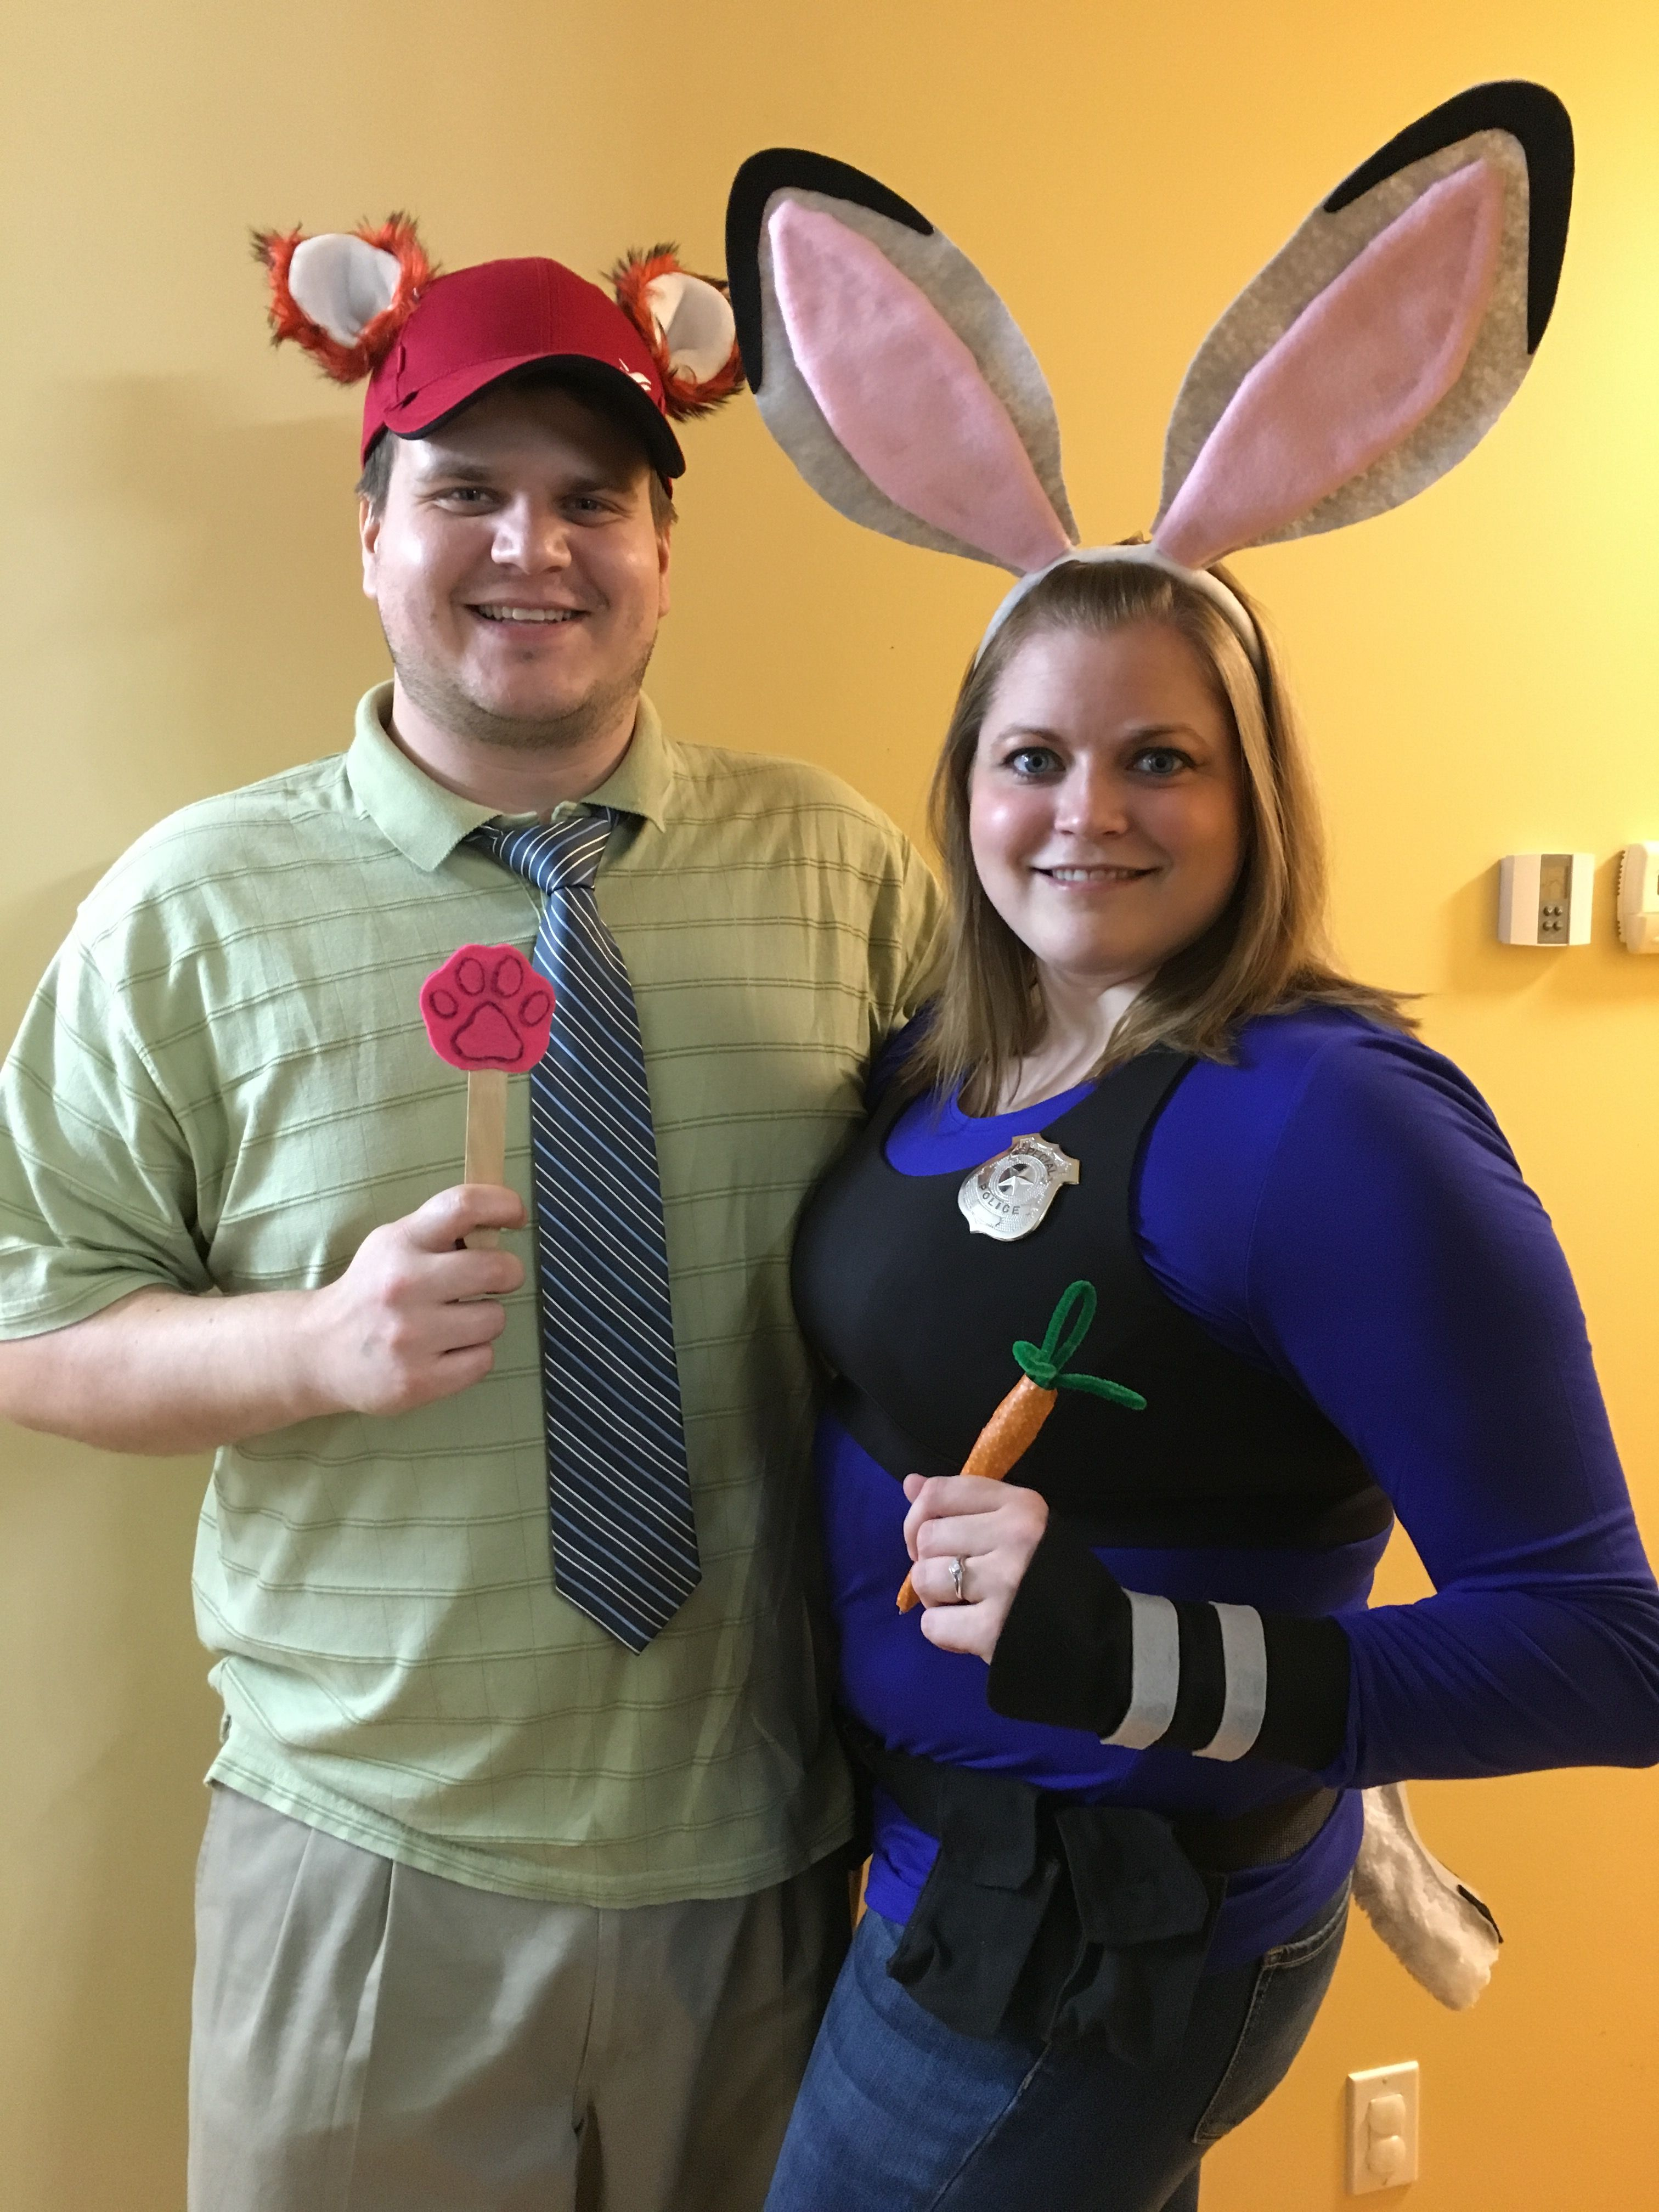 Nick Wilde and Officer Judy Hopps reporting for duty! Zootopia couples costume!